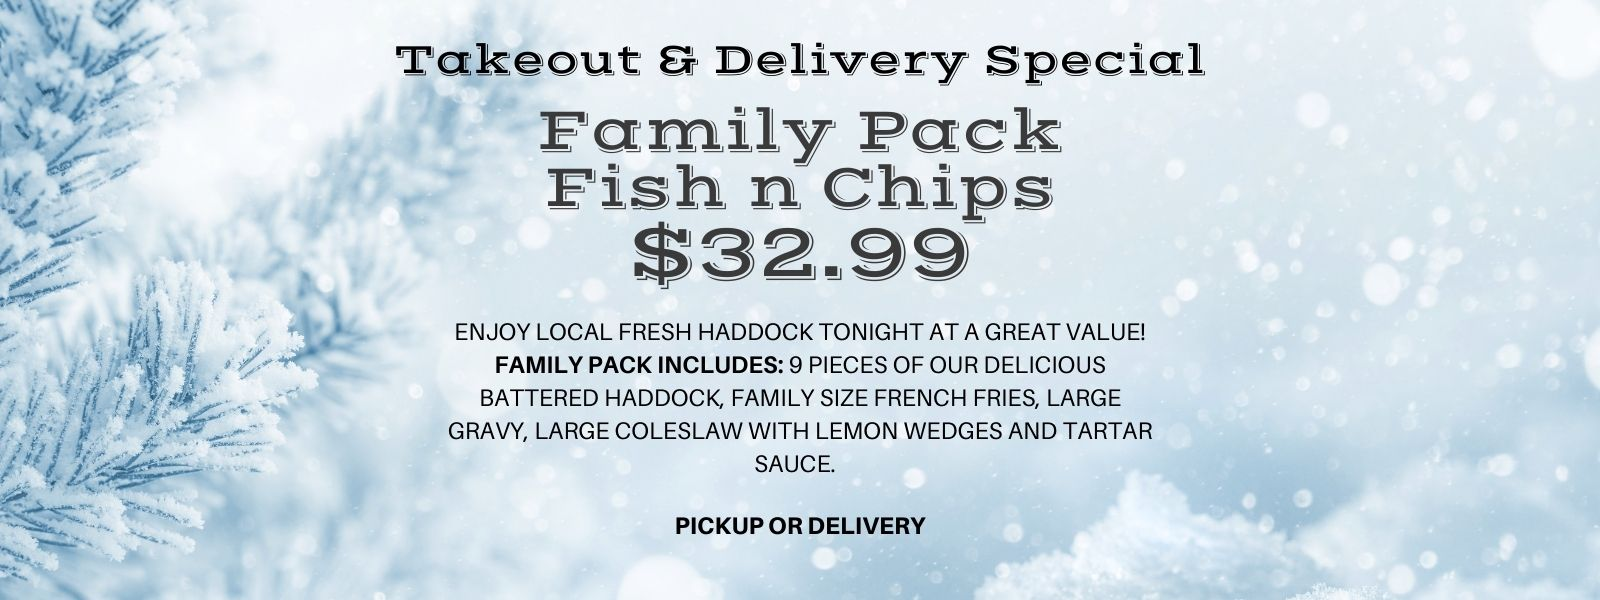 Fish-n-Chips_Family Pack (2)